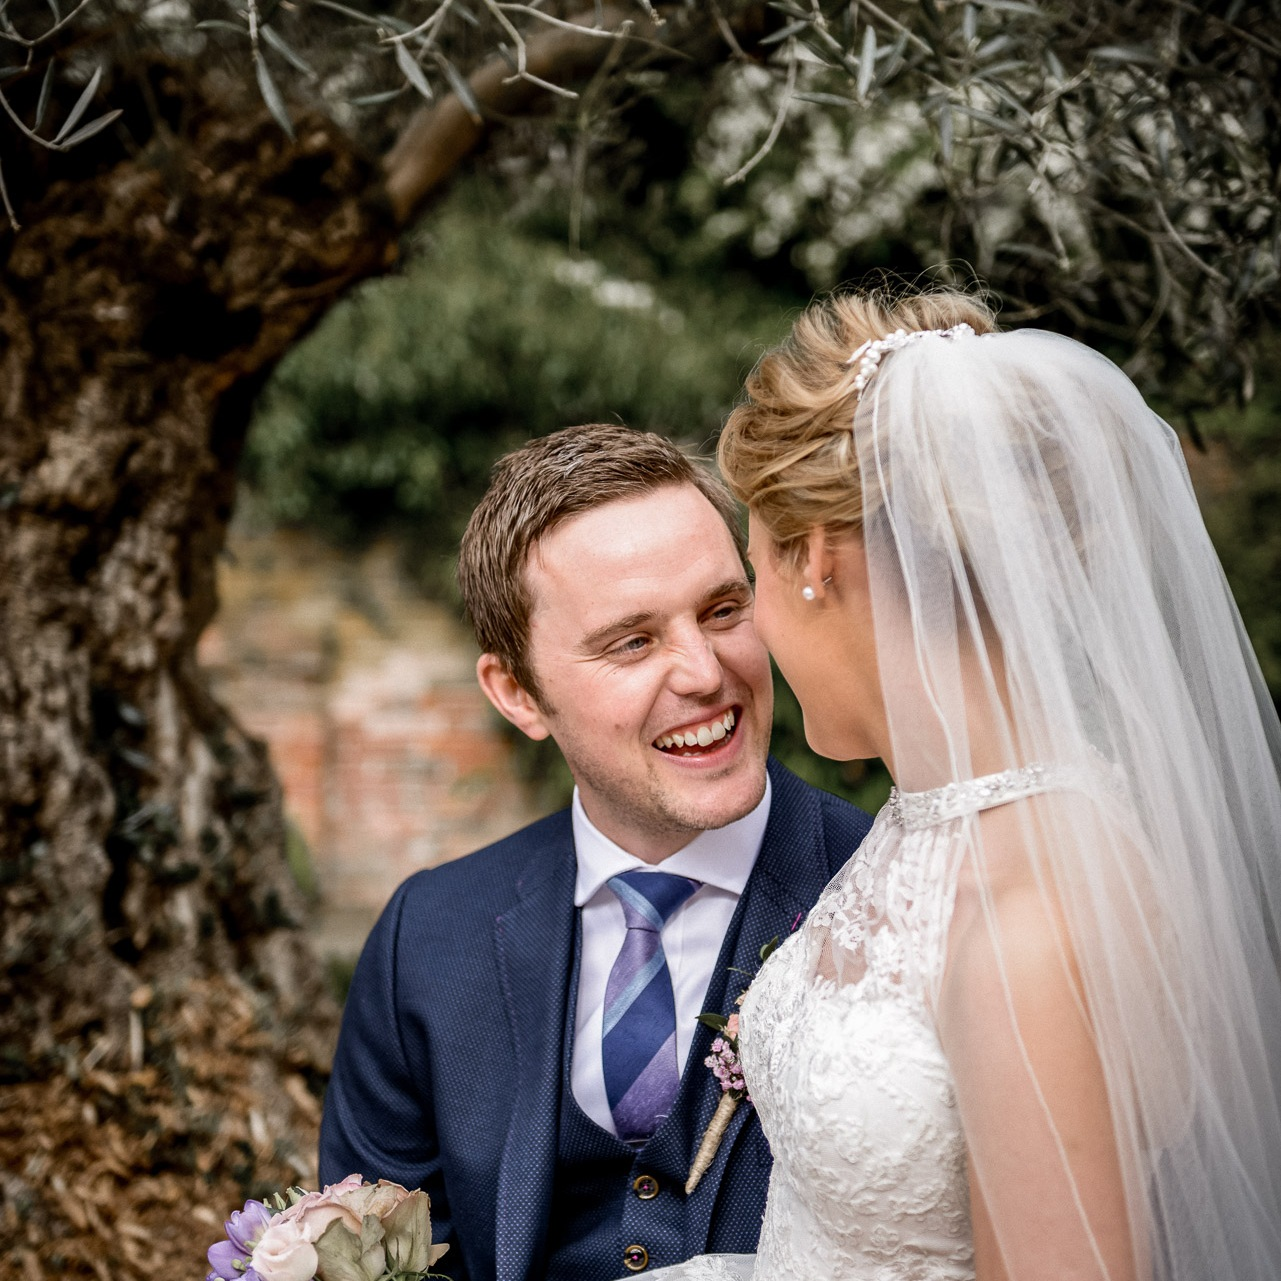 Warwickshire Wedding Photography Portfolio-Shustoke Barns Wedding Photography by Chris Fossey Photography-18